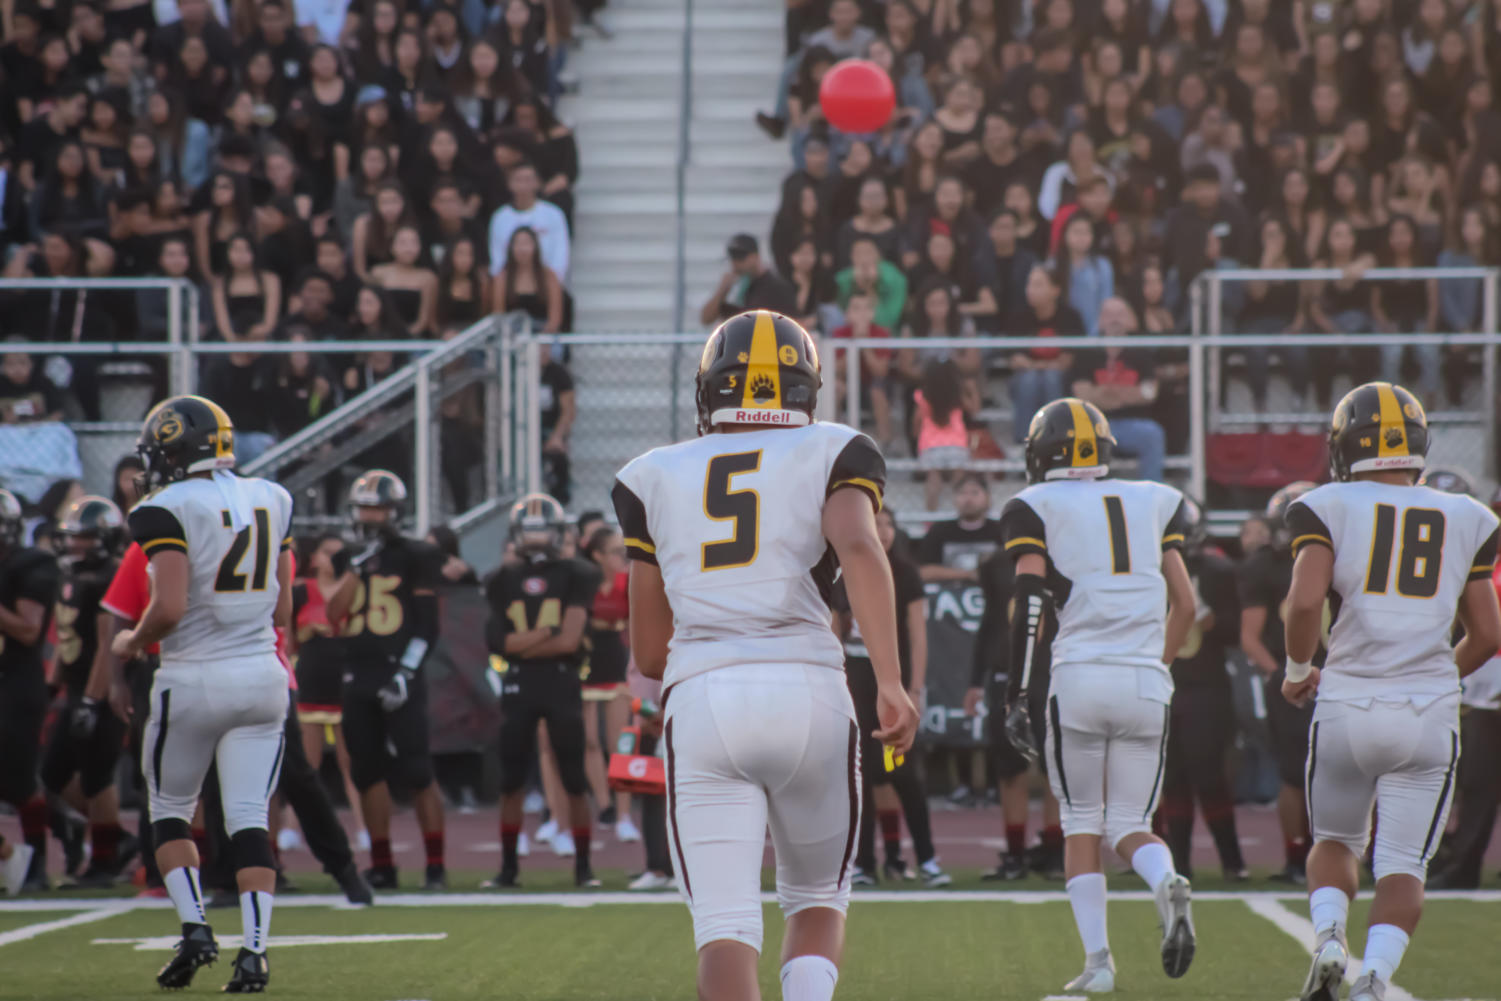 Quarterback+Jesse+Cendejas+%235+runs+towards+an+offensive+play+on+Friday%2C+Aug.+24%2C+2018.